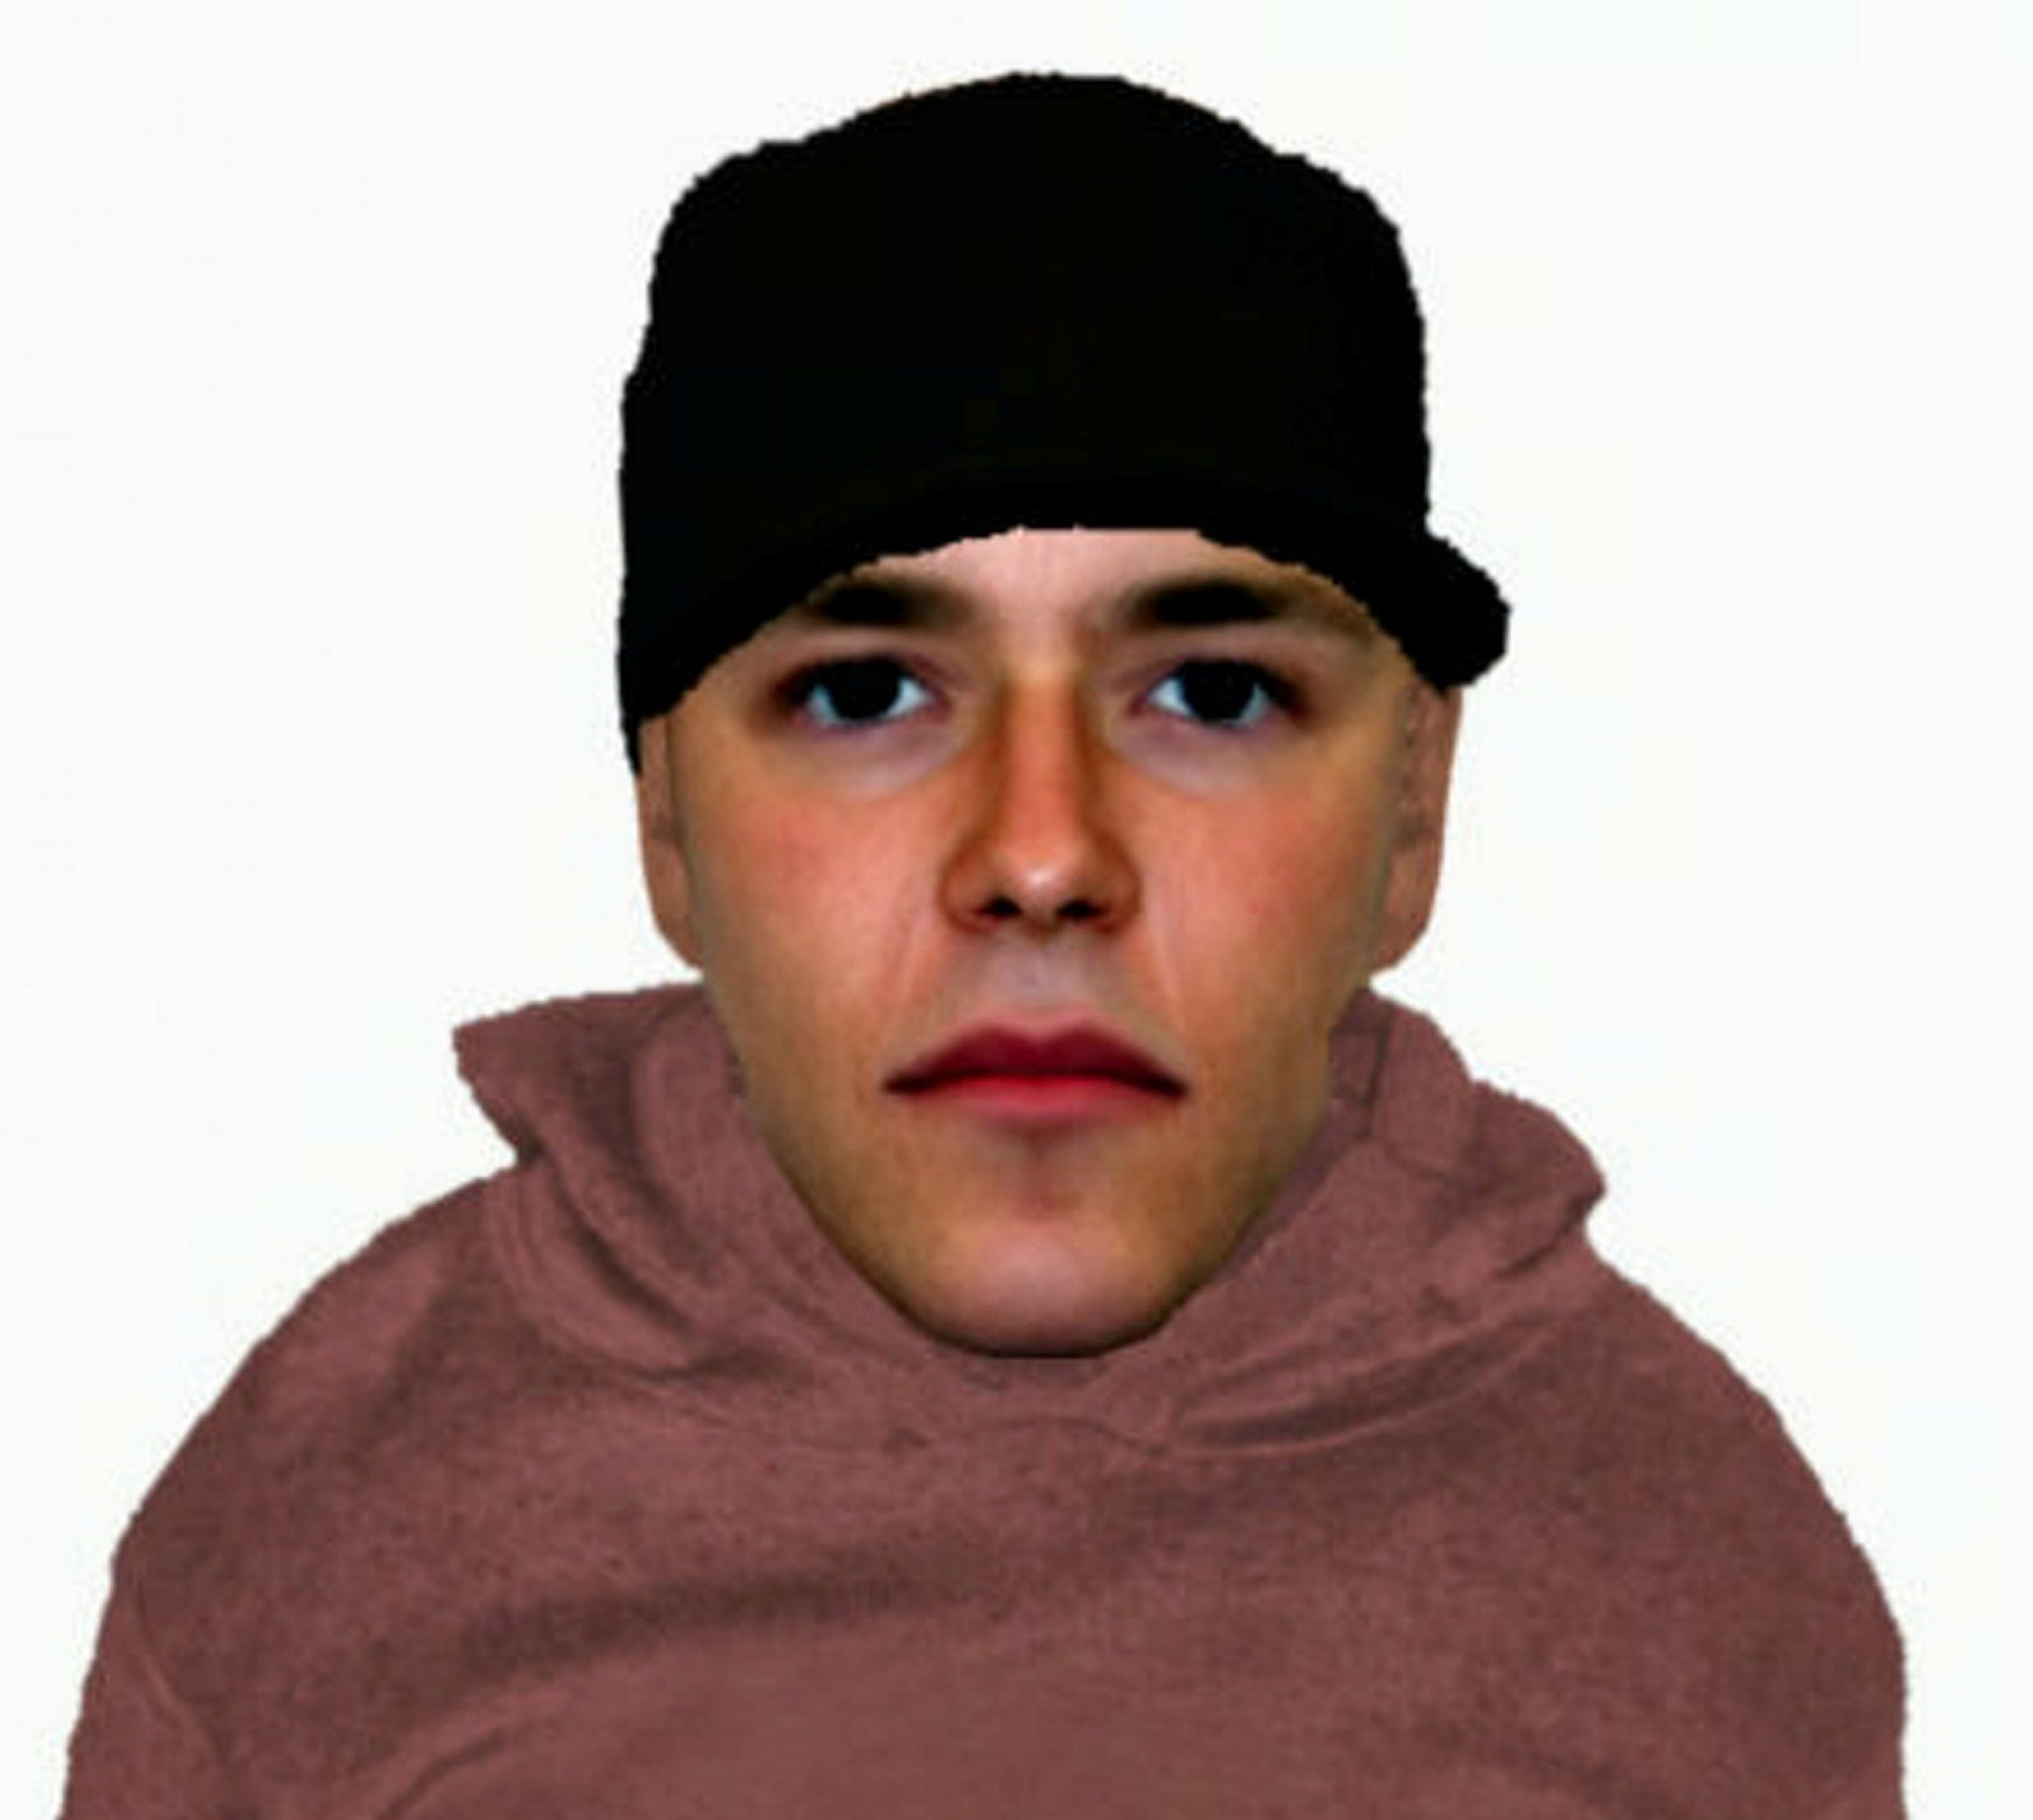 The e-fit sketch released by Northamptonshire Police of a suspect accused of slapping a woman?s bottom- who looks just like Justin Bieber.See SWNS story SWMDbieber.Police are hunting a Justin Bieber look-a-like accused of slapping a woman?s bottom.Officers are hunting the pervert who also tried to kiss the victim as he approached her in a street in broad daylight.Northamptonshire Police released the image of the suspect which was mocked on social media for the man?s similarity to the 24-year-old pop star.The bizarre e-fit shows the suspect wearing a black baseball cap and what appears to be a brown shawl covering his arms and neck.